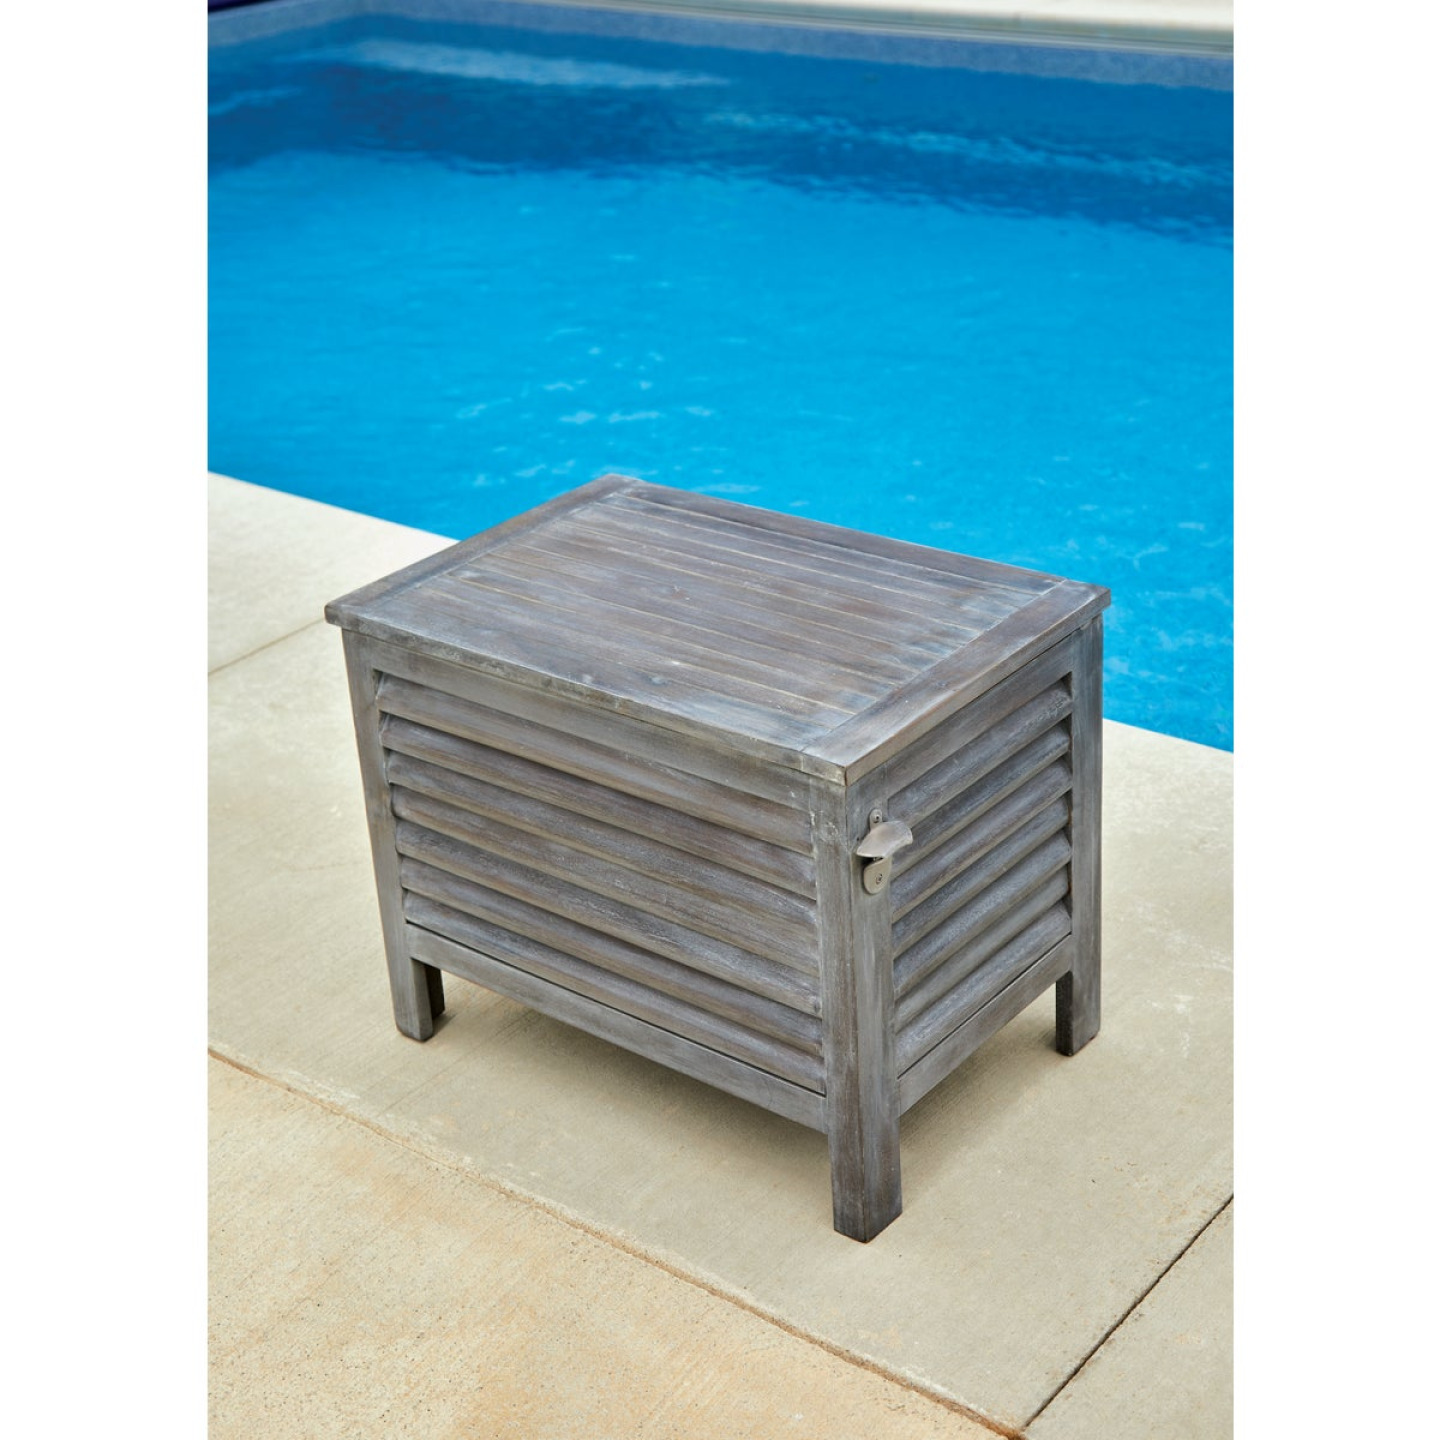 Leigh Country 56 Qt. Acacia Wood Cooler, Gray Image 4